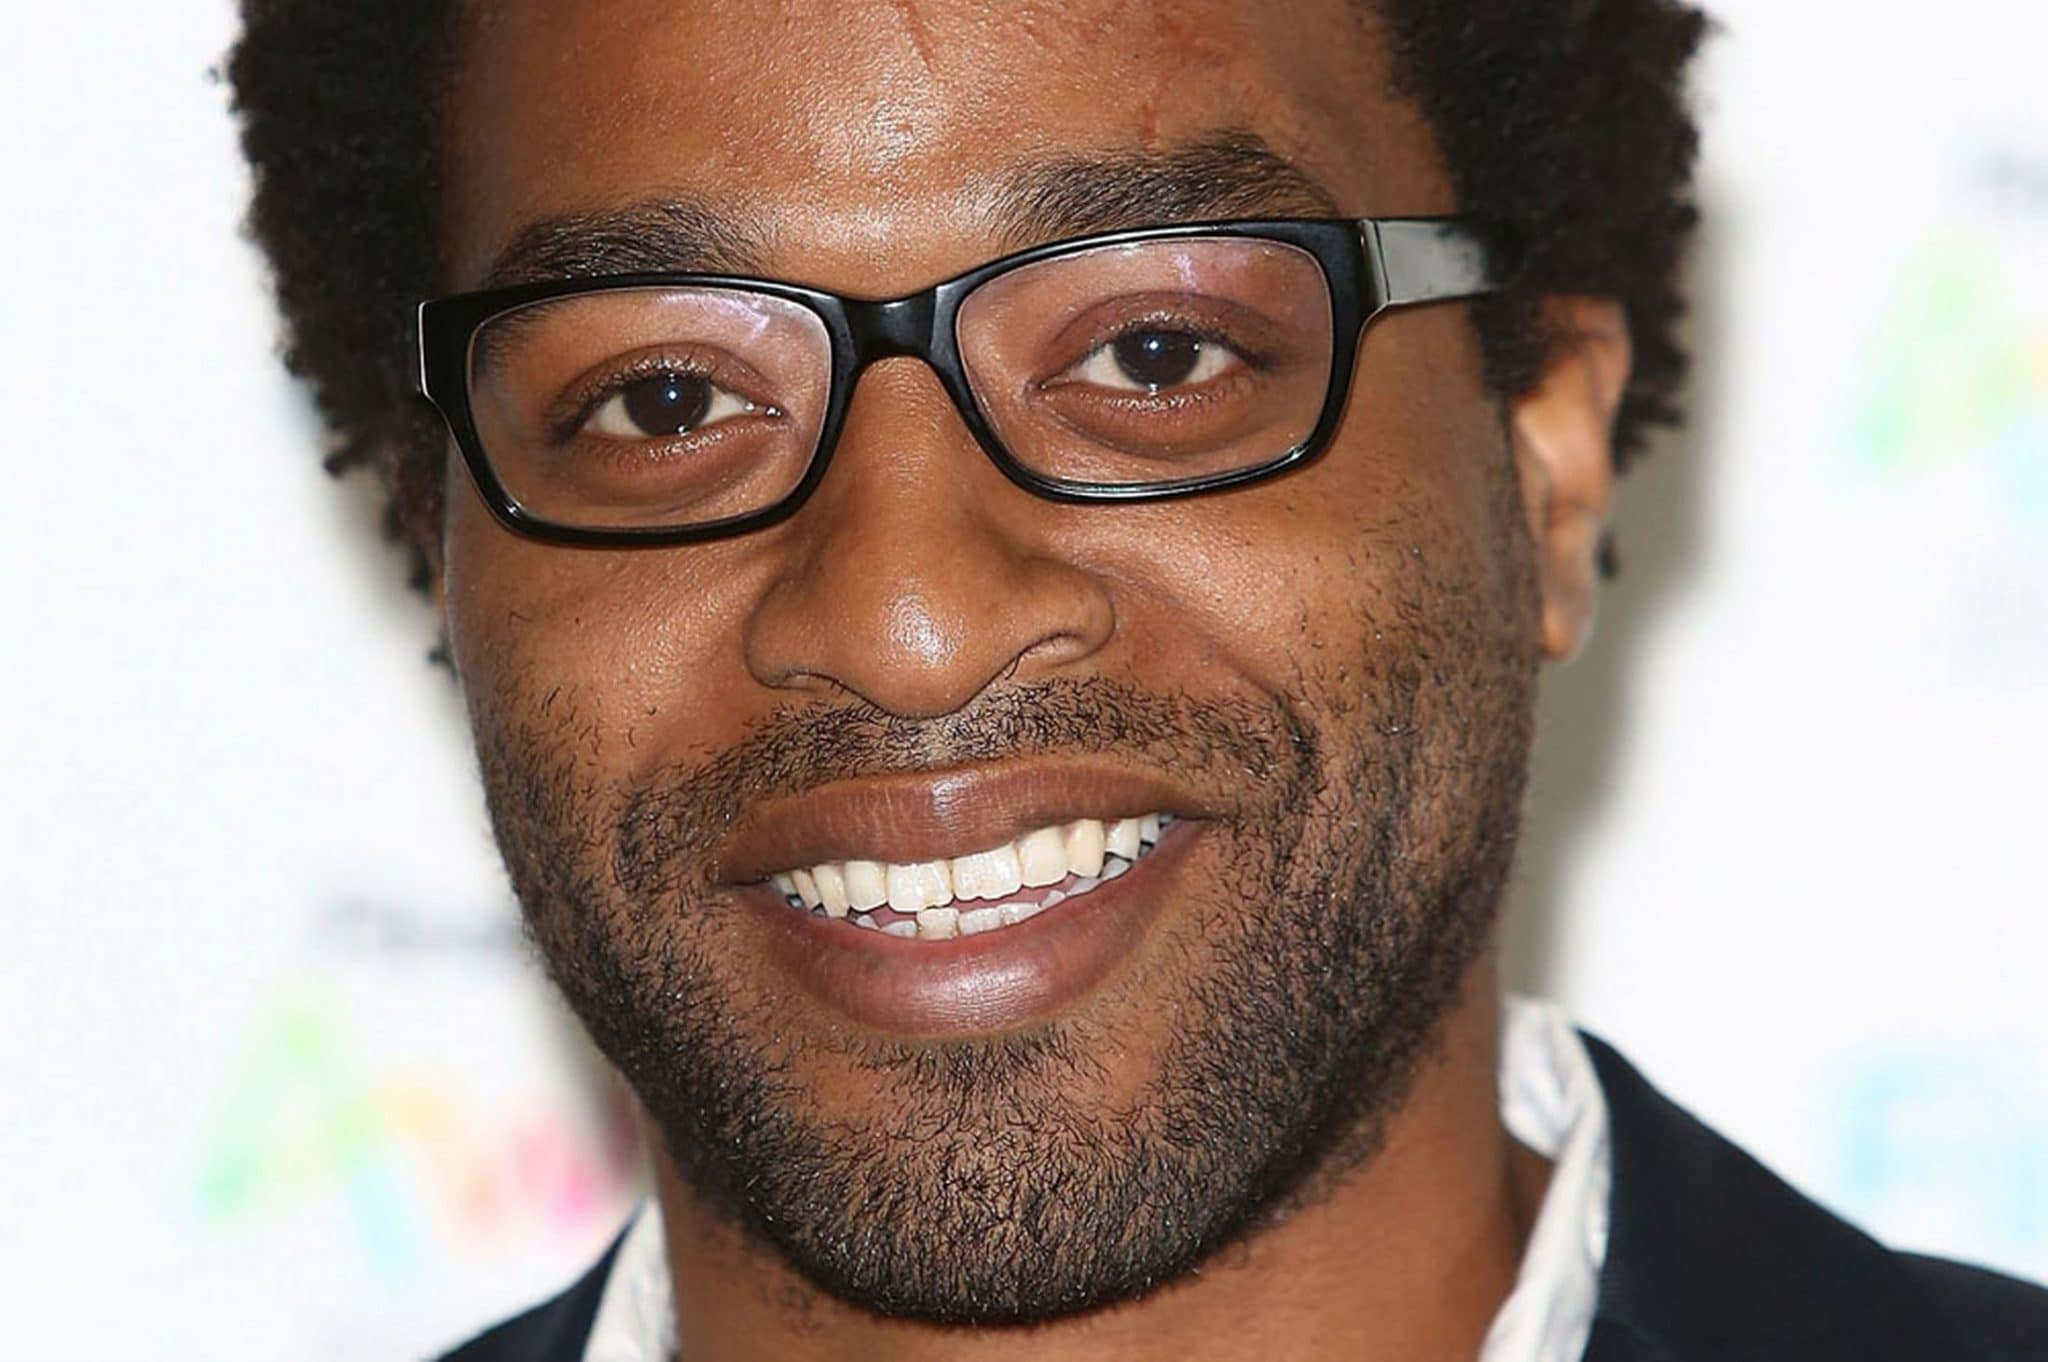 Chiwetel ejiofor the world star of nigerian cinema spotted by steven spielberg